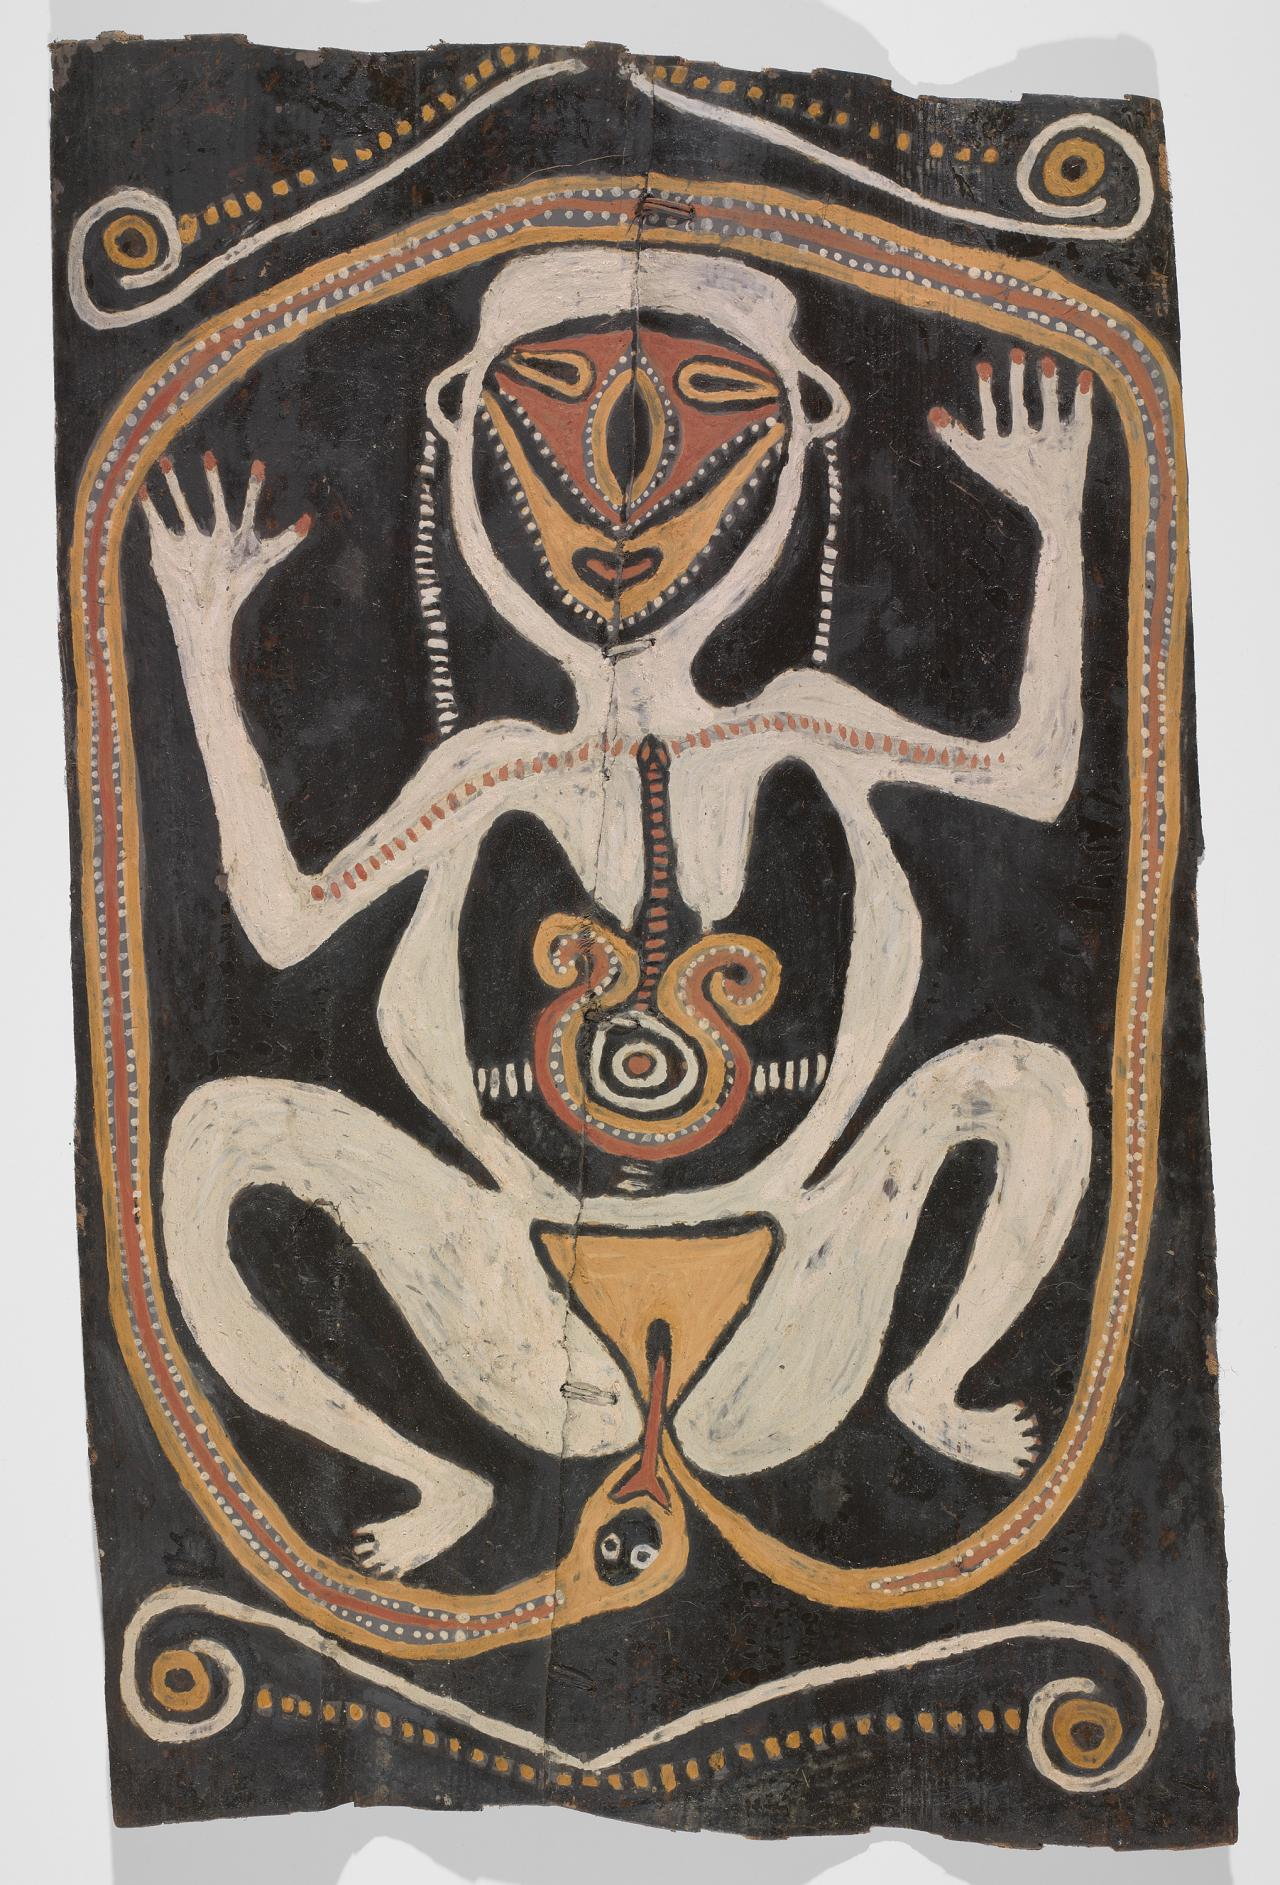 Mythical woman named Tubishikay owned by the Hamikwa totemic division